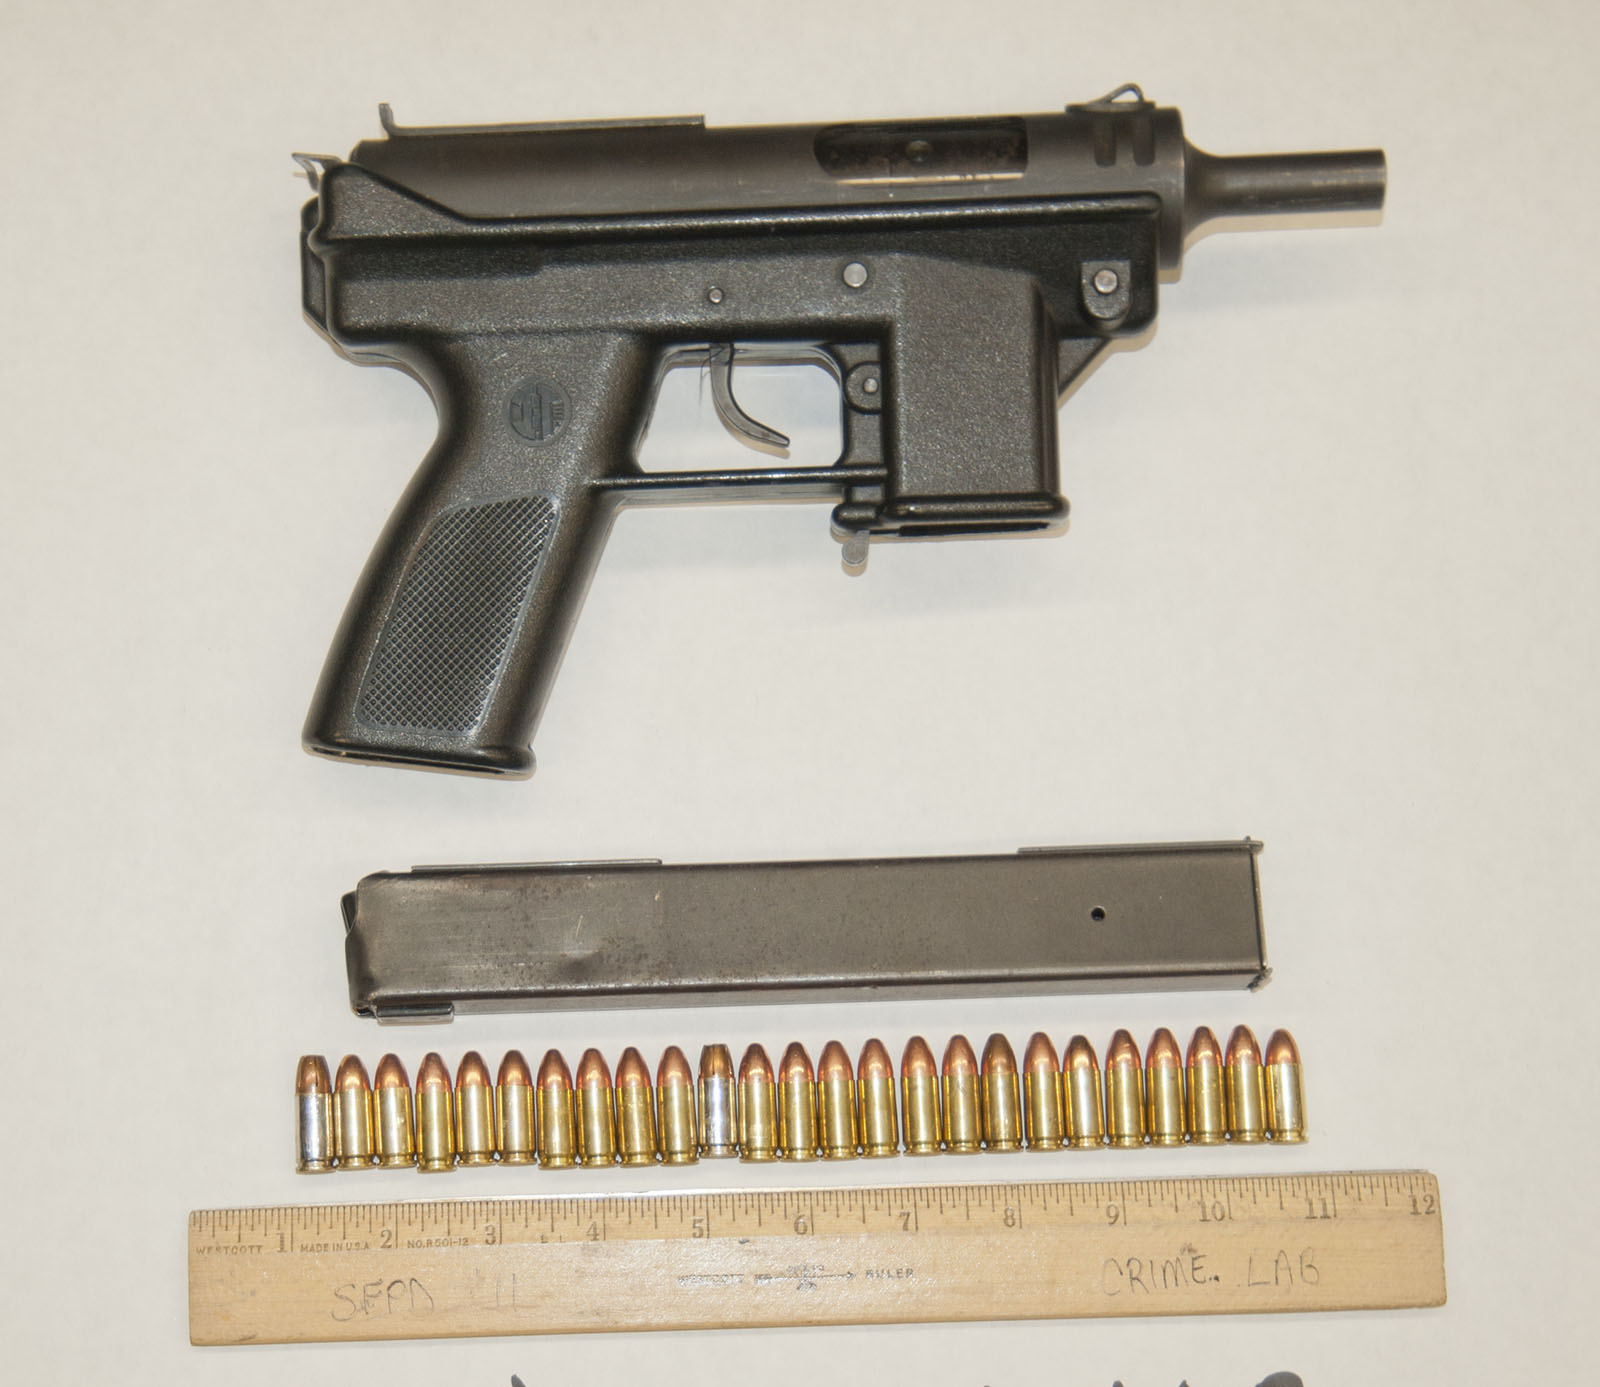 The Tec-9 pistol the SFPD confiscated from a 22-year-old man involved in an officer related shooting Thursday night. Photo courtesy of the SFPD.